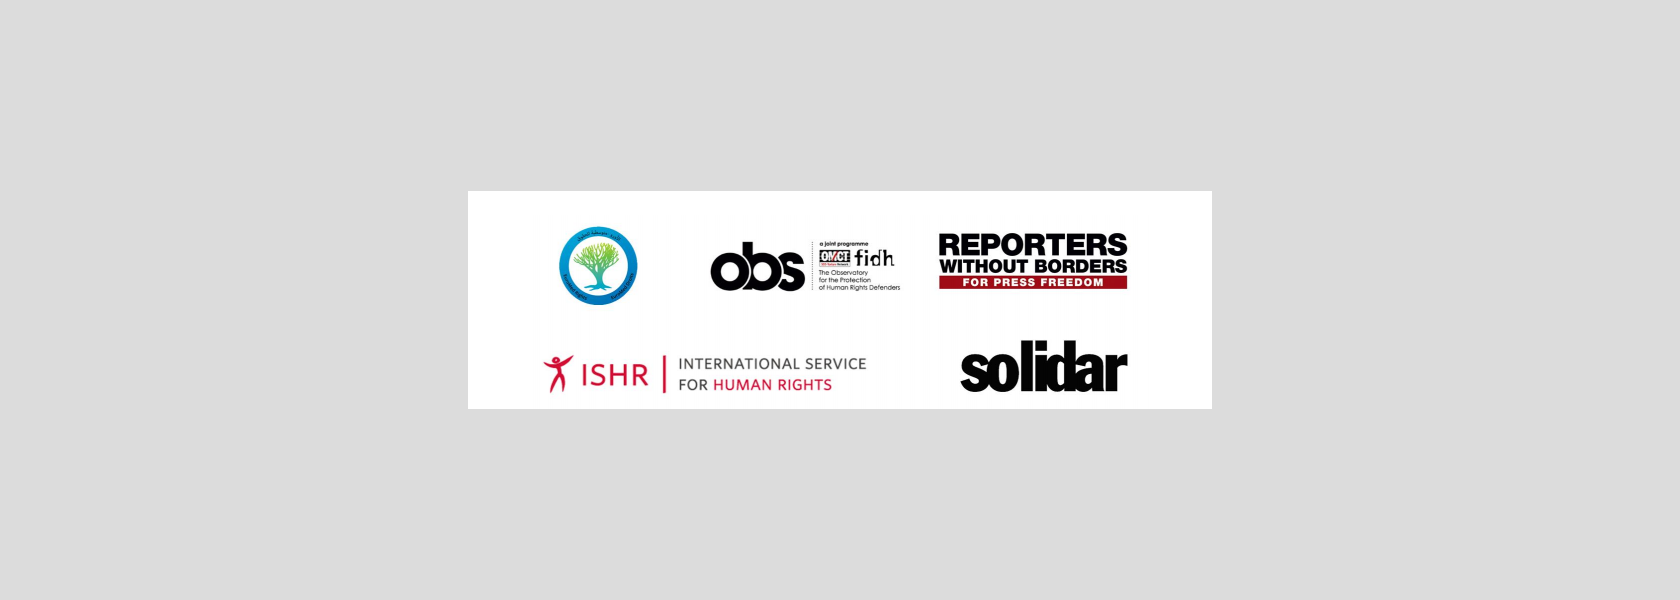 Egypt Csos Strongly Condemn The Use Of Travel Bans Against Human Rights Defenders In Egypt